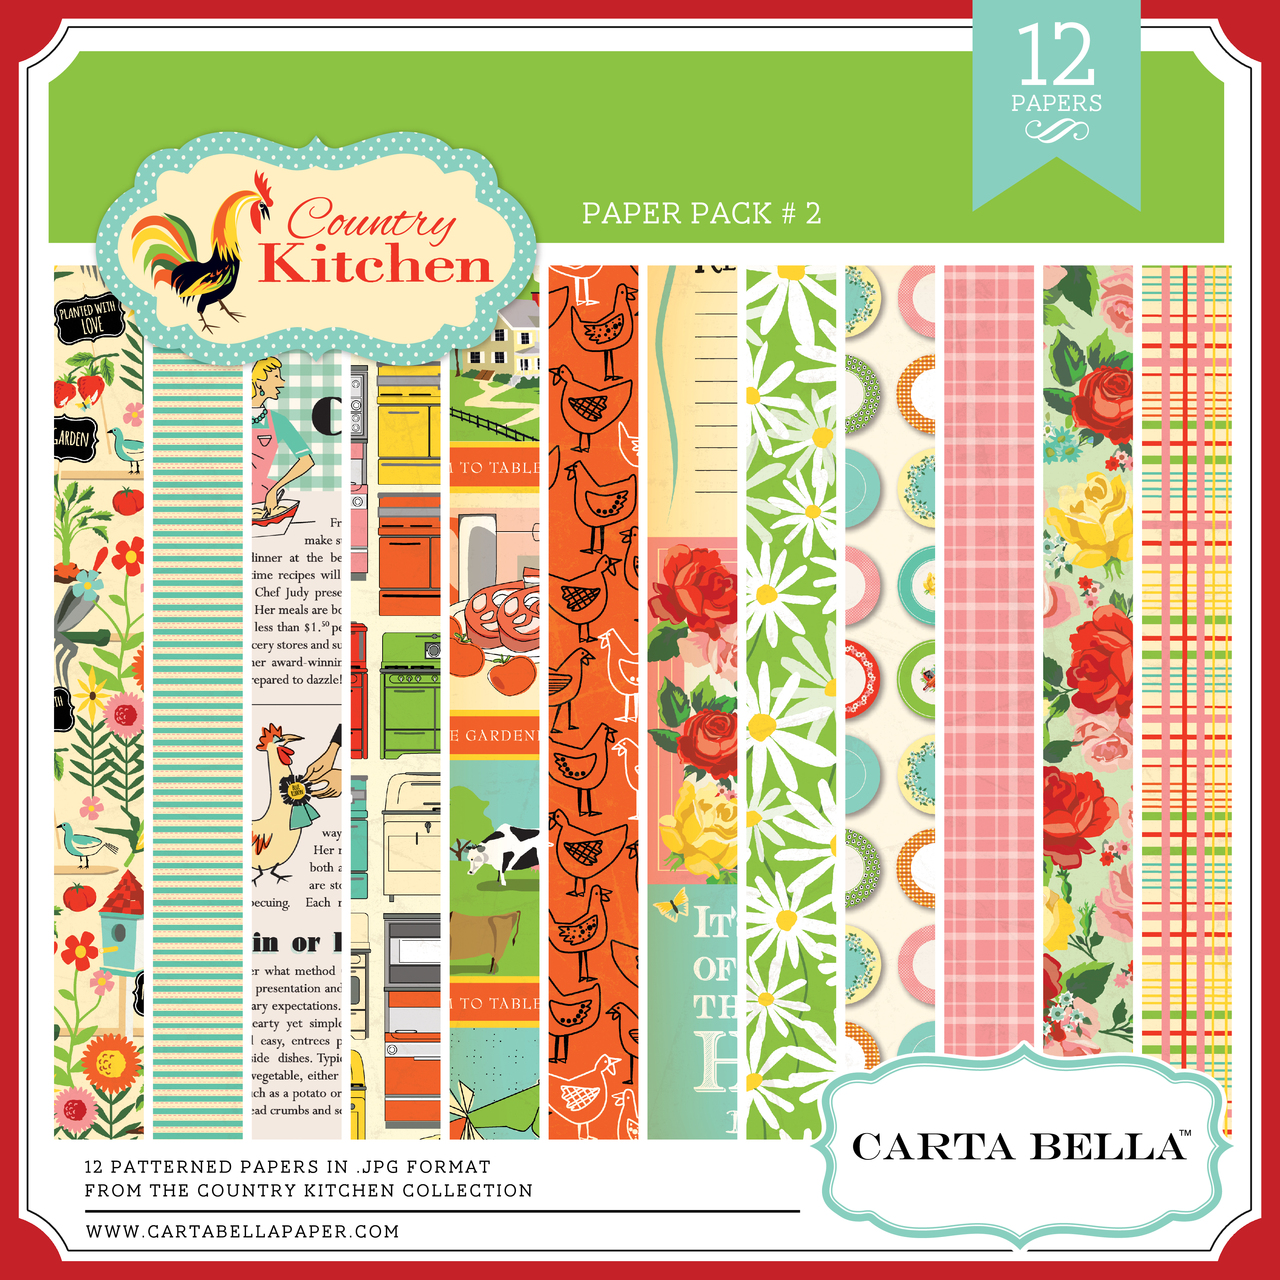 Country Kitchen Paper Pack #2